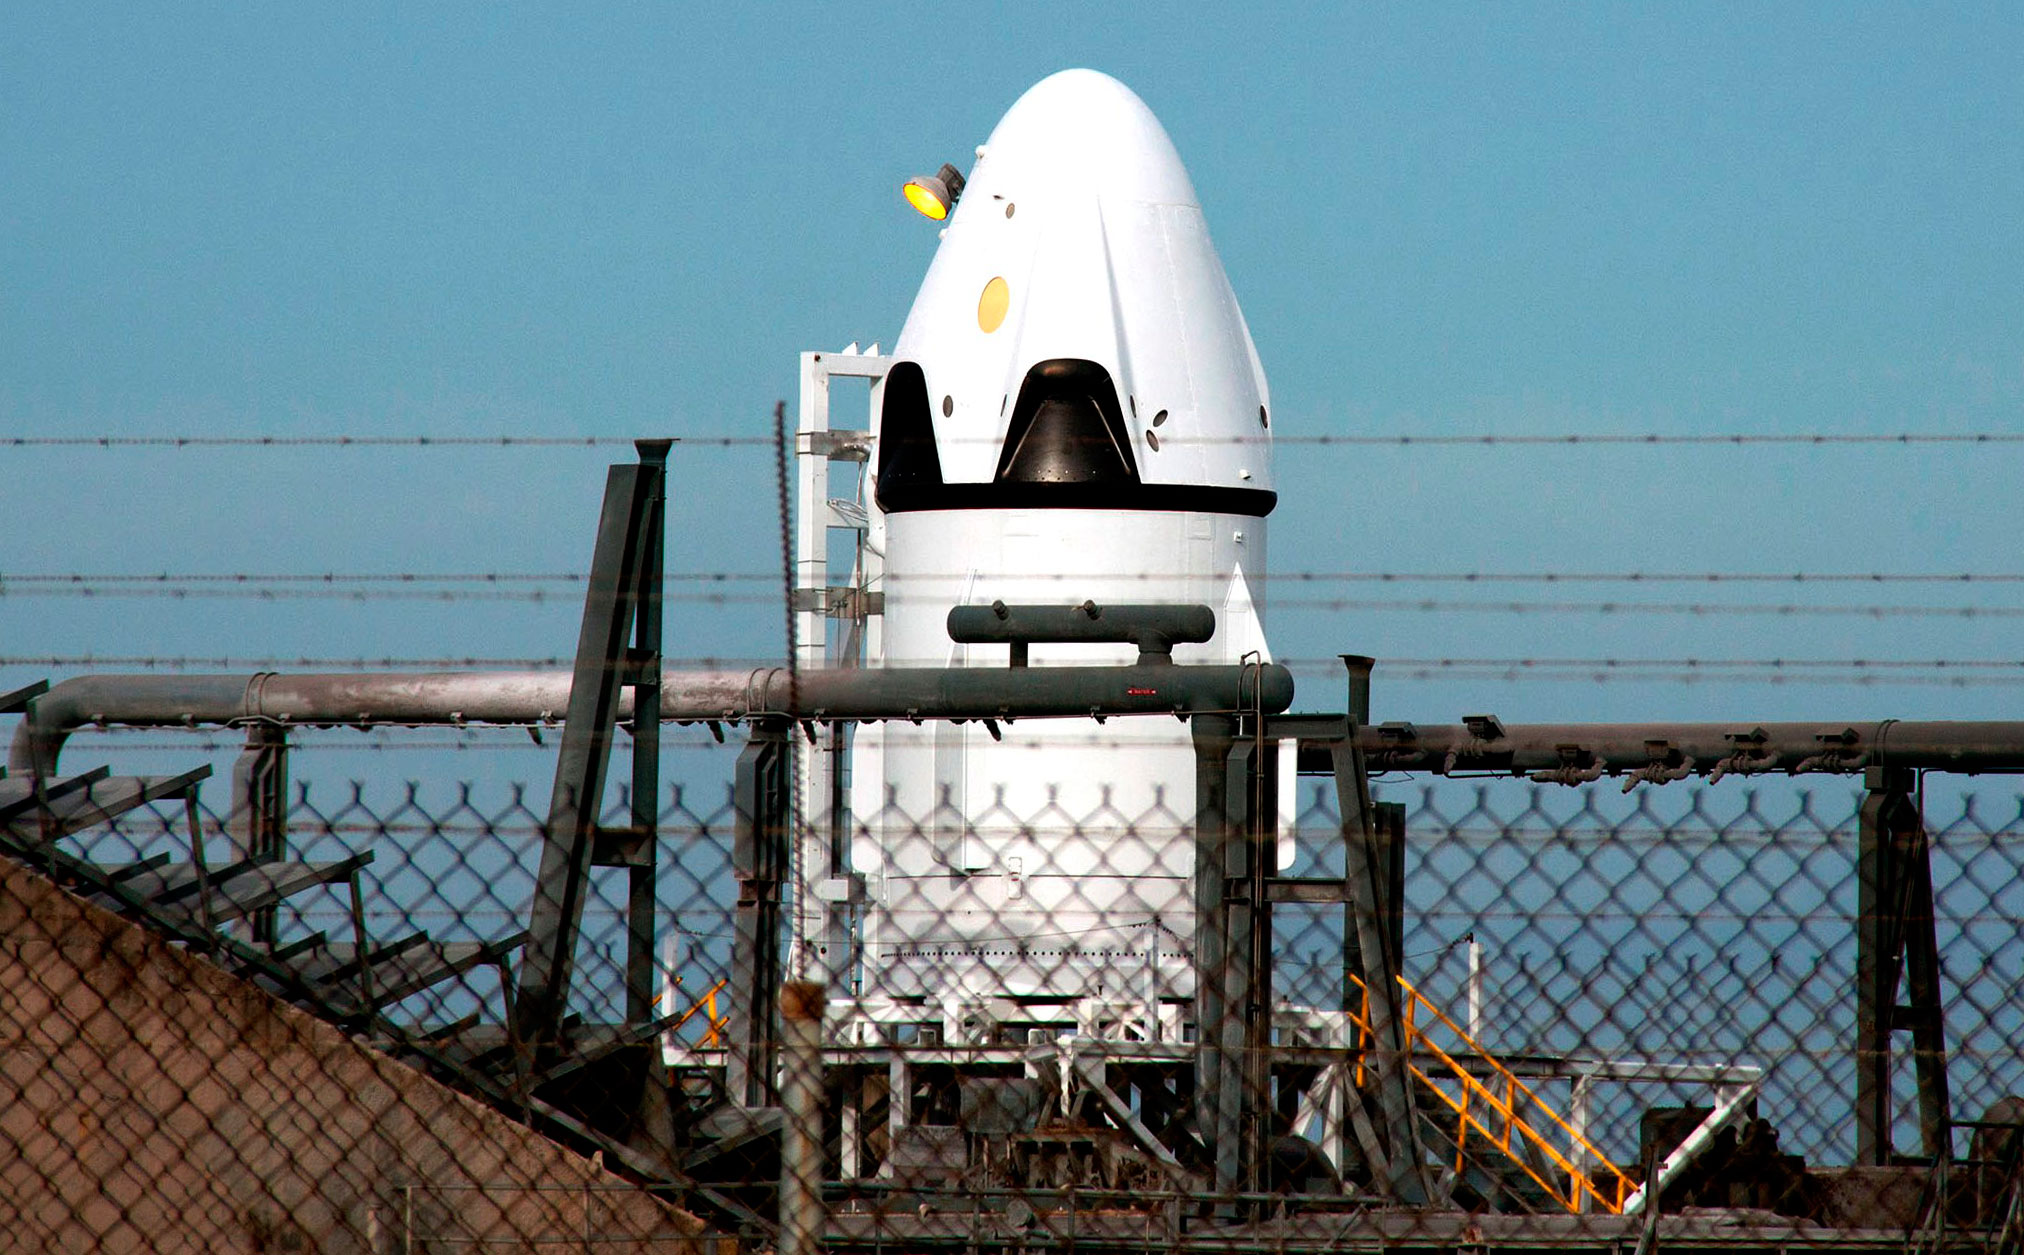 SpaceX Dragon Ready for Pad Abort Test   NASA